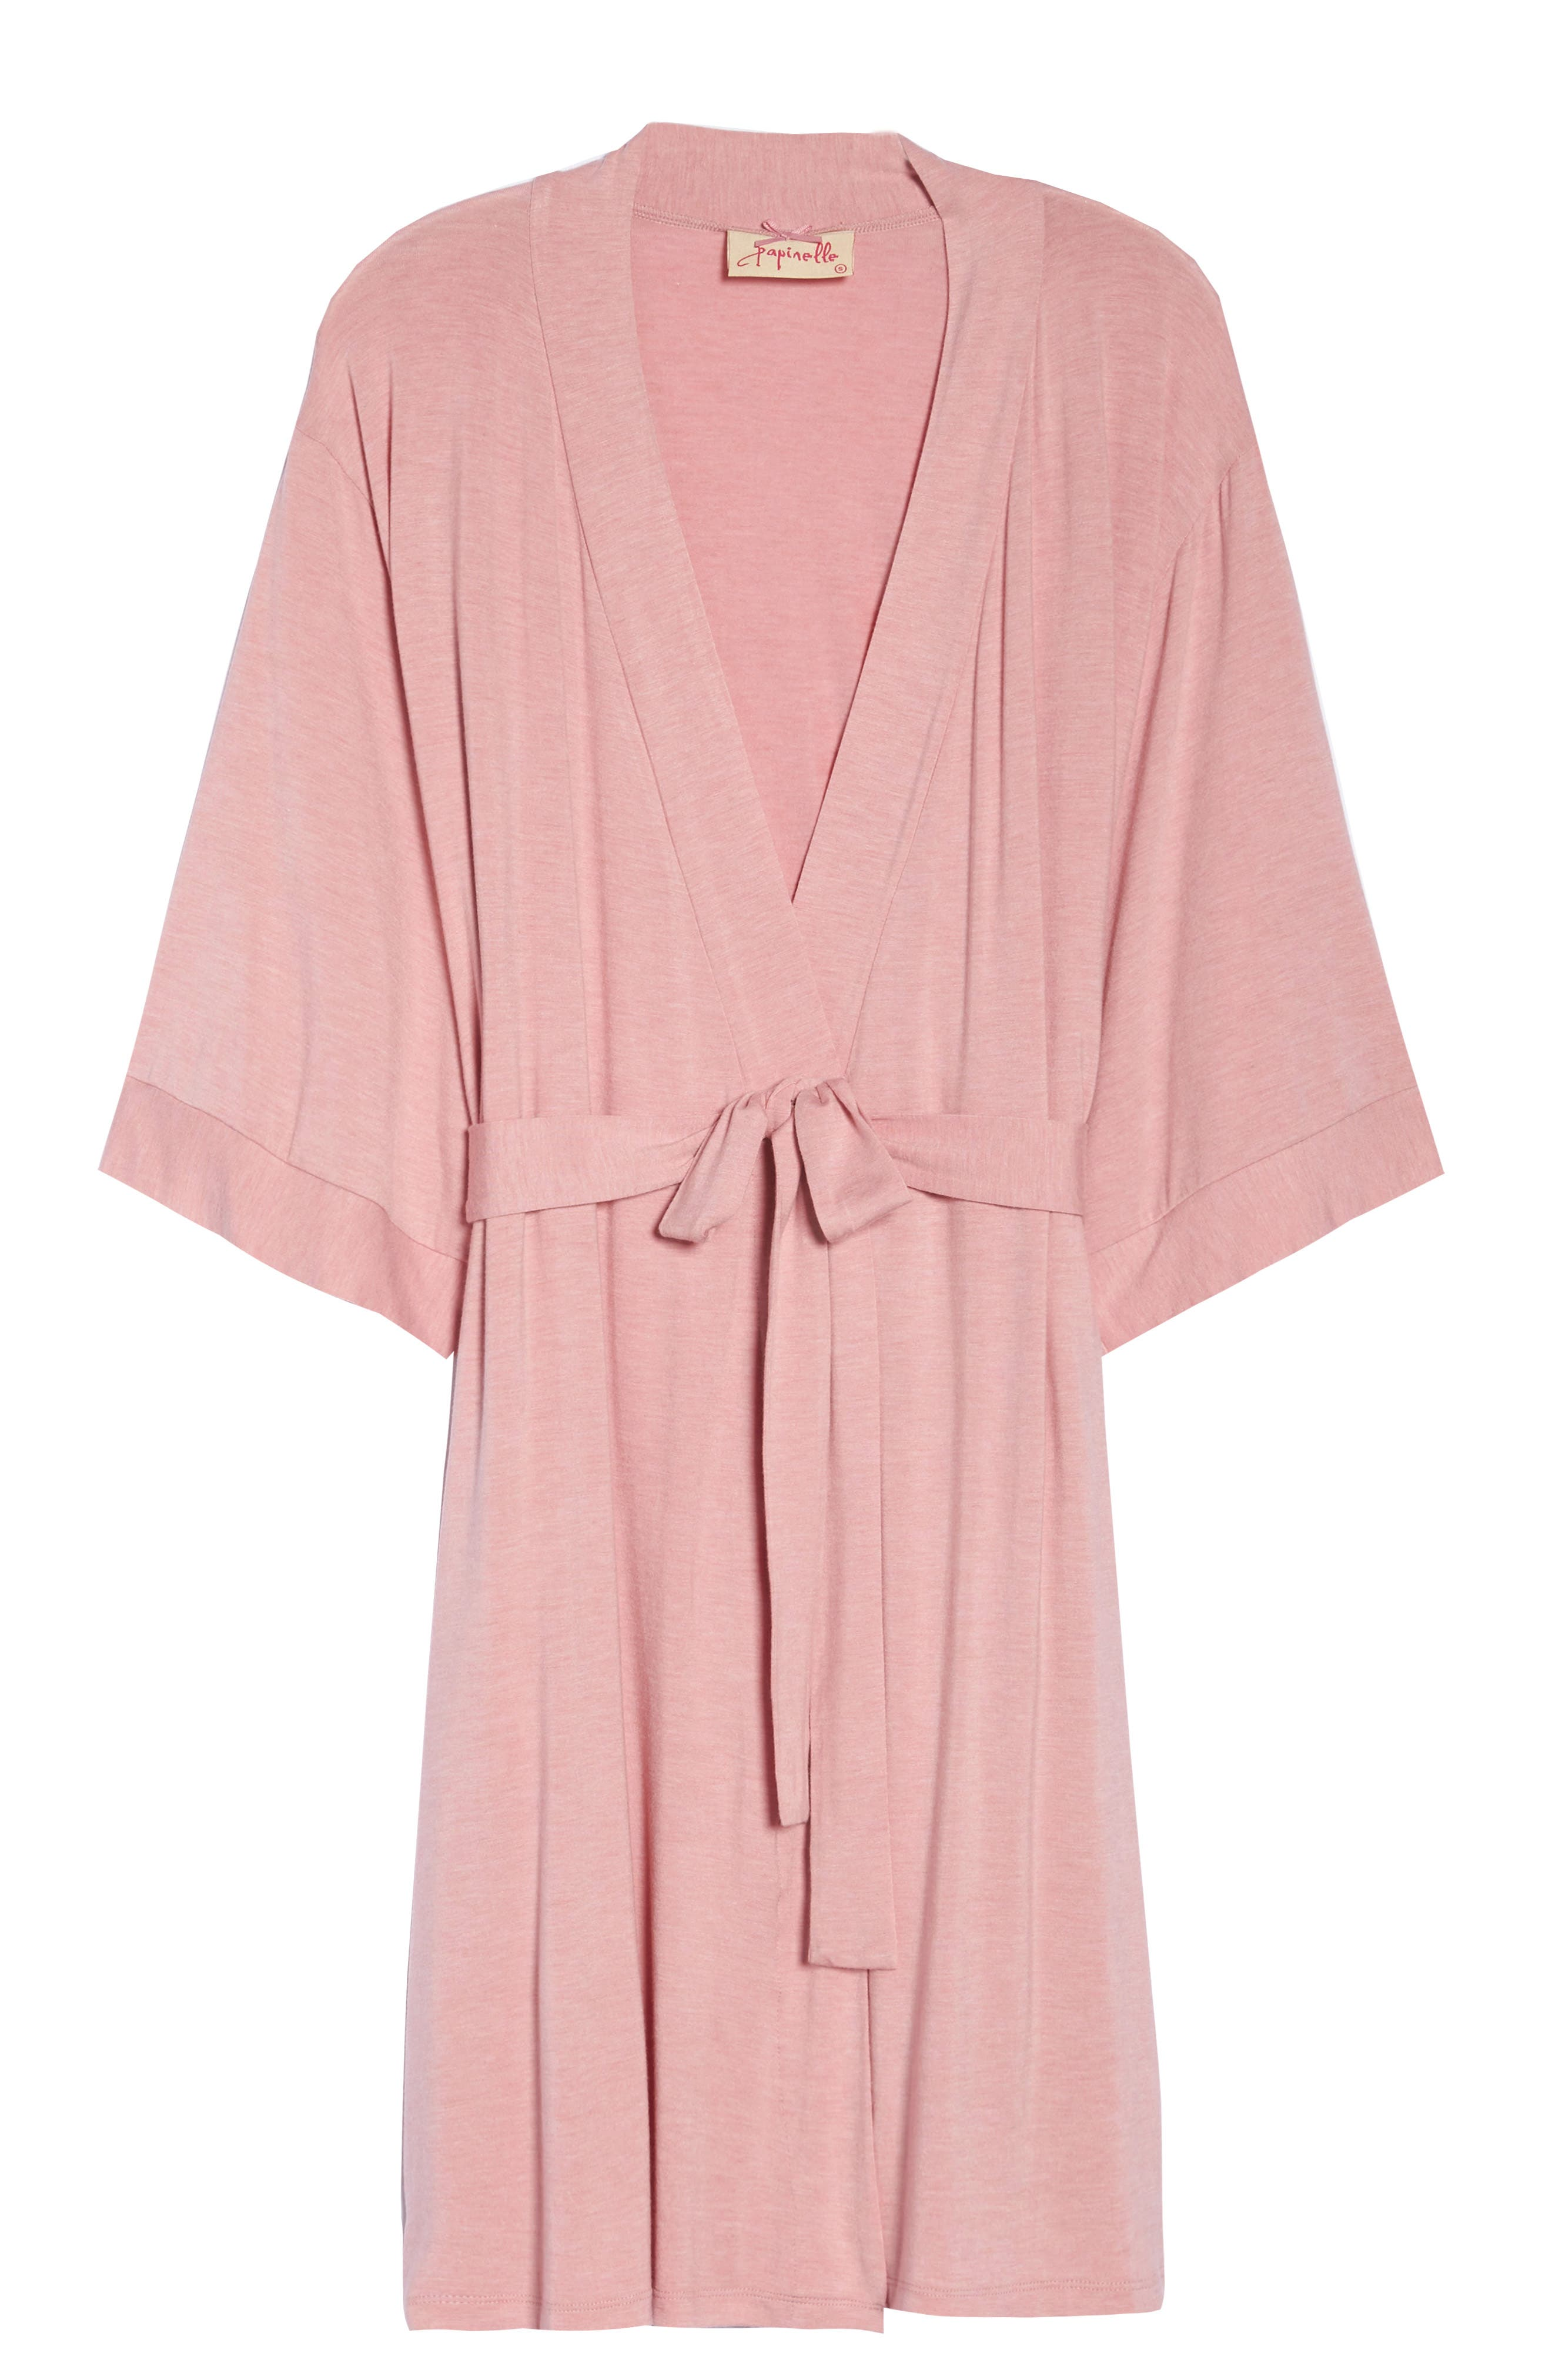 Short Robe,                             Alternate thumbnail 6, color,                             VINTAGE PINK